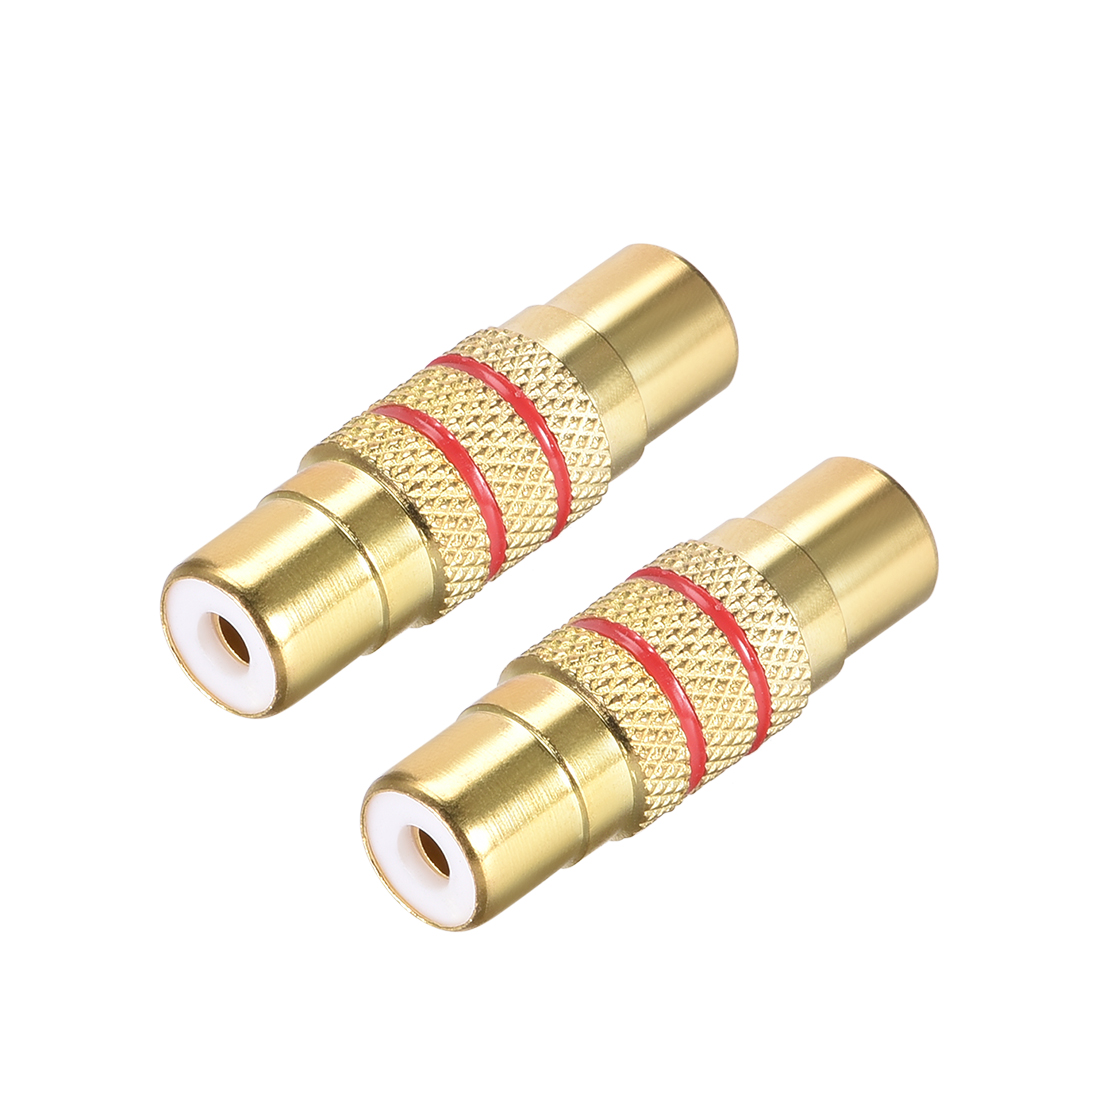 RCA Female to Female Connector Stereo Audio Adapter Coupler 2Pcs Gold Tone